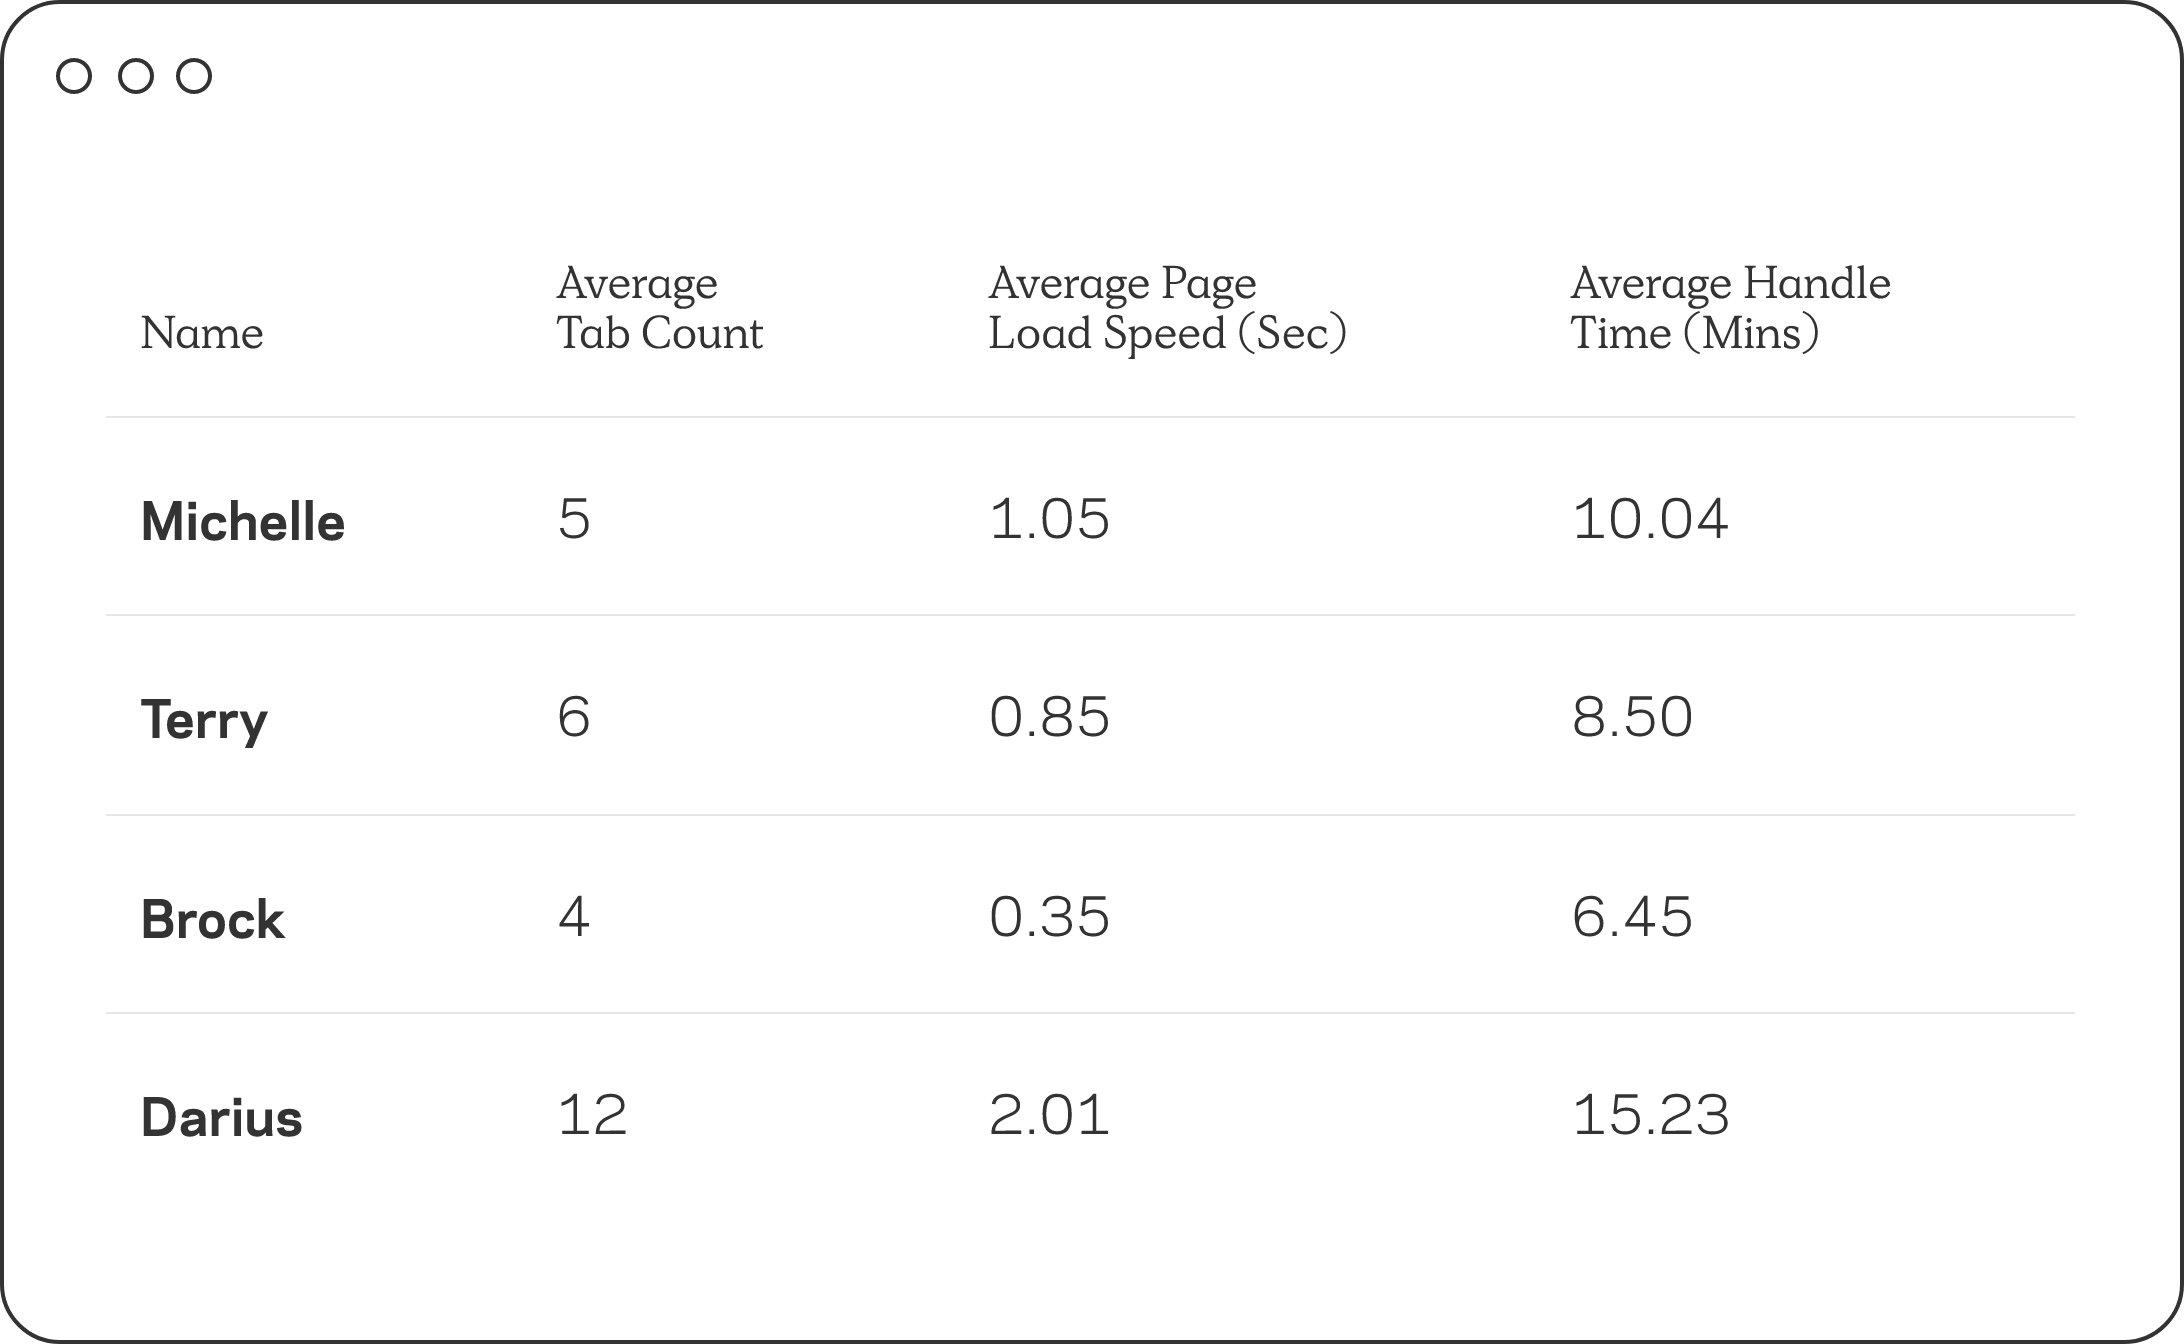 Page load speed per person table